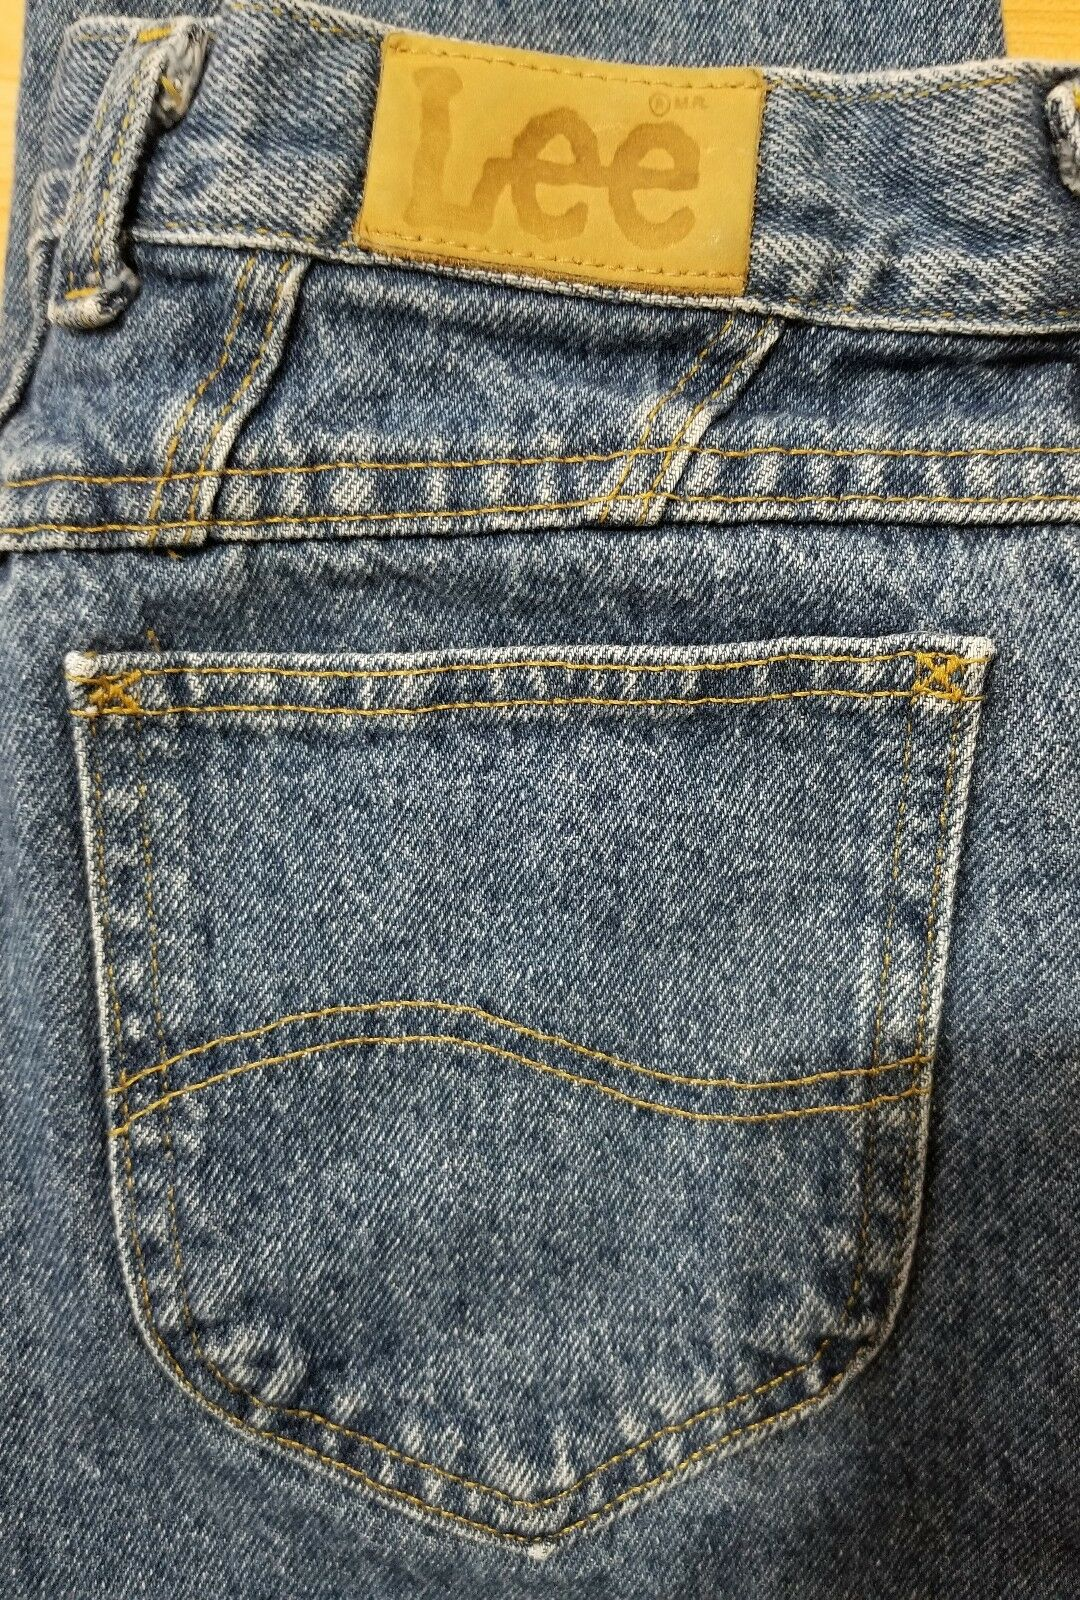 Vintage Lee Womens Mom Jeans High Waisted Tapered Med Wash USA Union Made 14 M